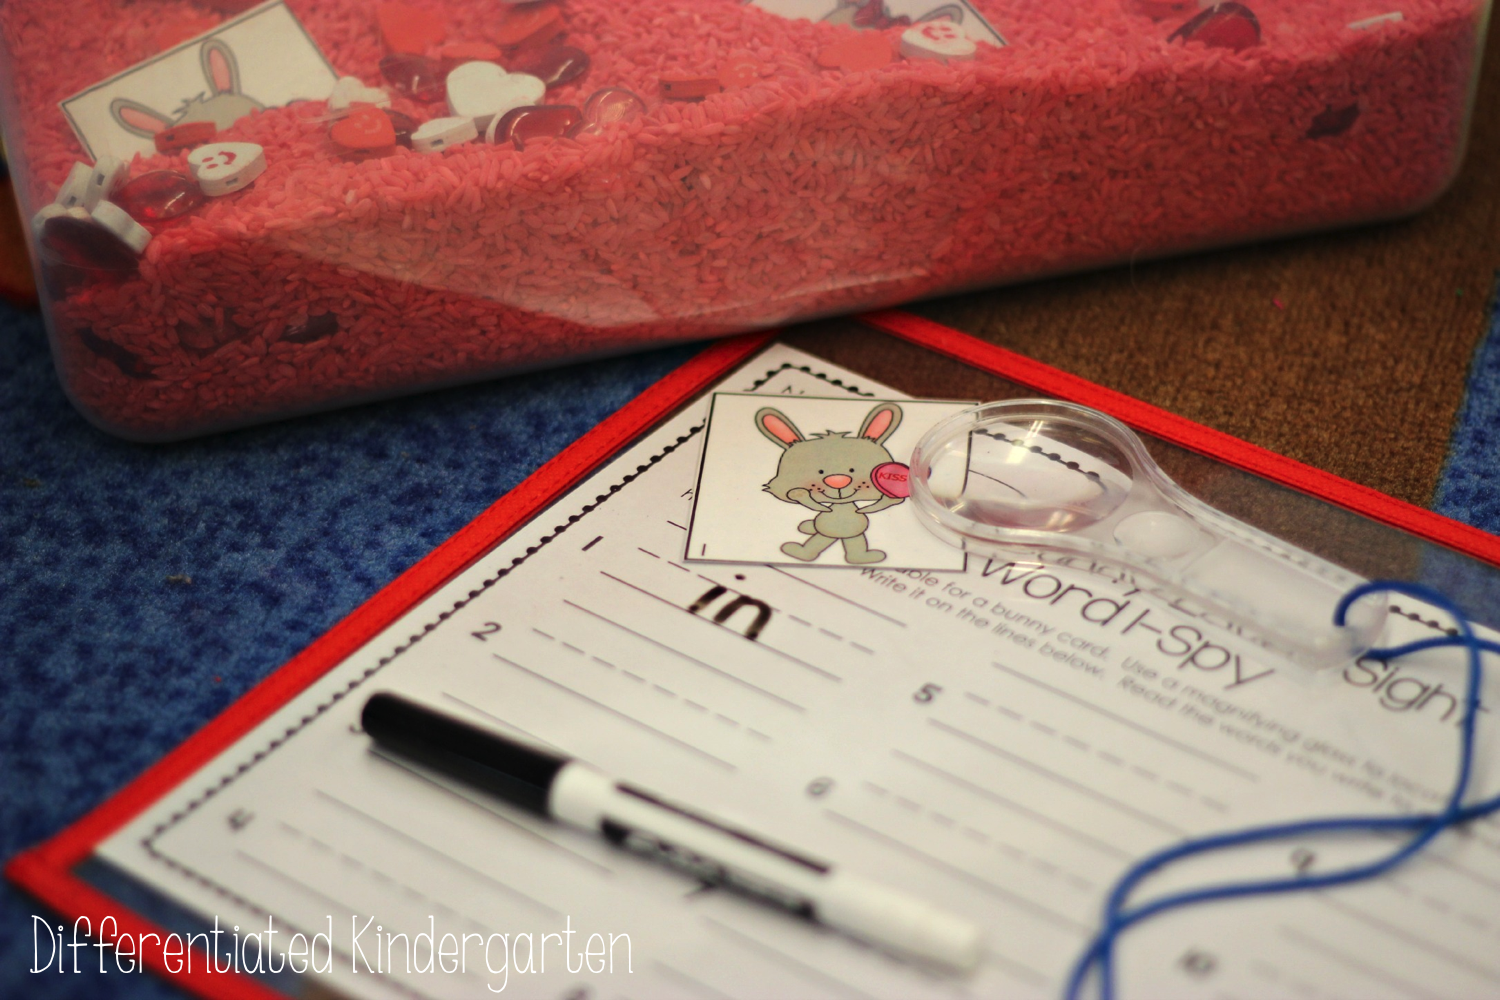 A Differentiated Kindergarten A New Spin On Morning Work And A Freebie To Get You Organized